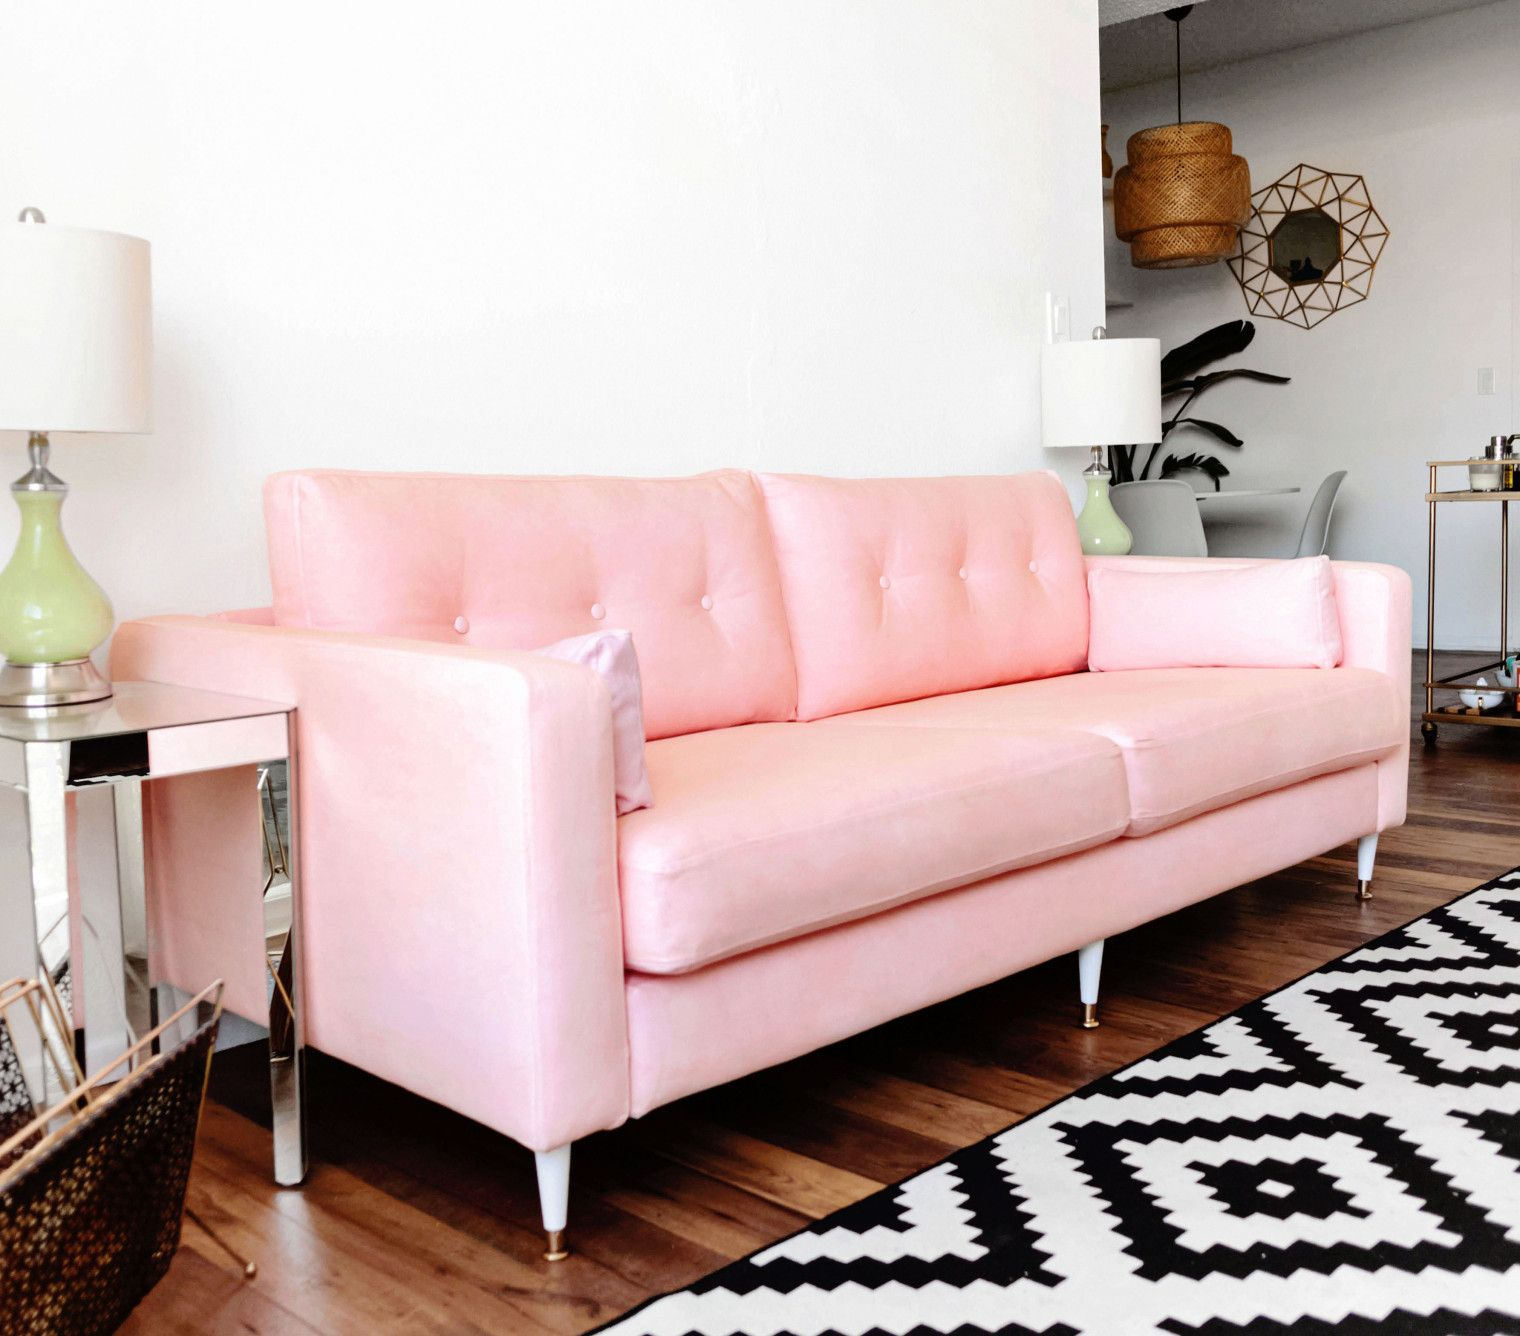 Karlstad Sofa Ikea Hack Mid Century Inspired Pink More